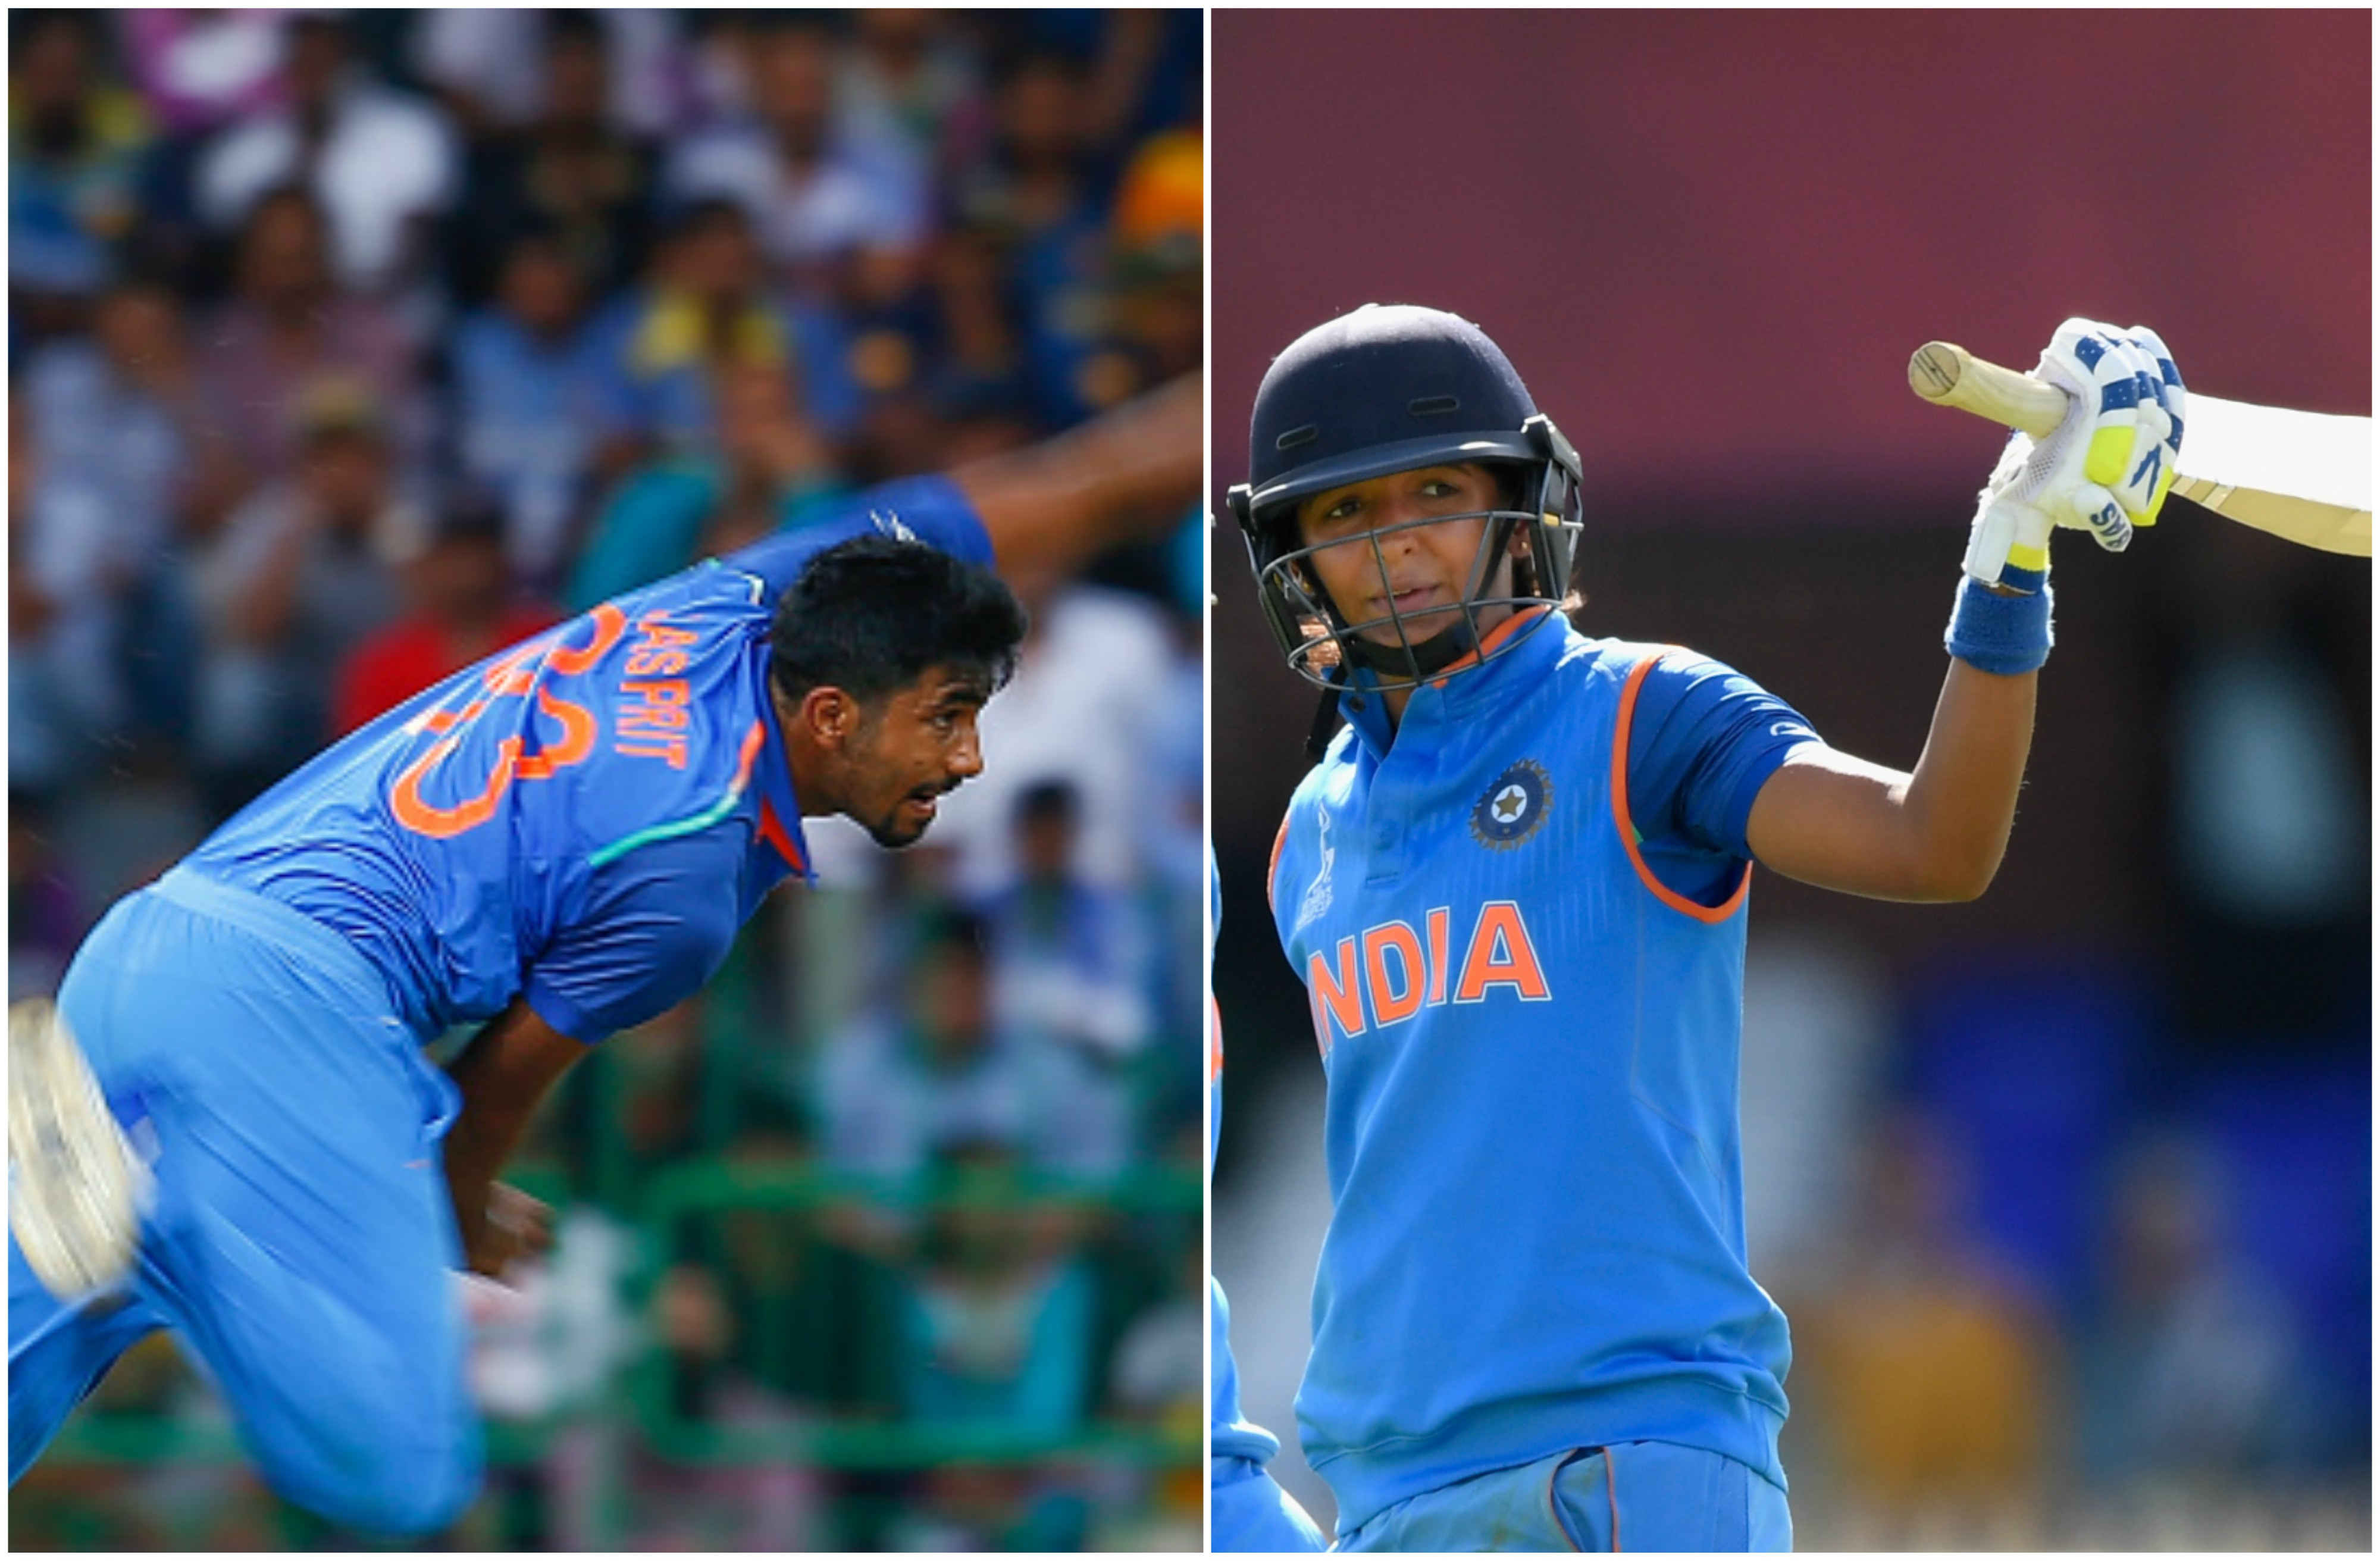 Jasprit Bumrah, Harmanpreet Kaur included in 'Forbes India 30 Under 30 list'